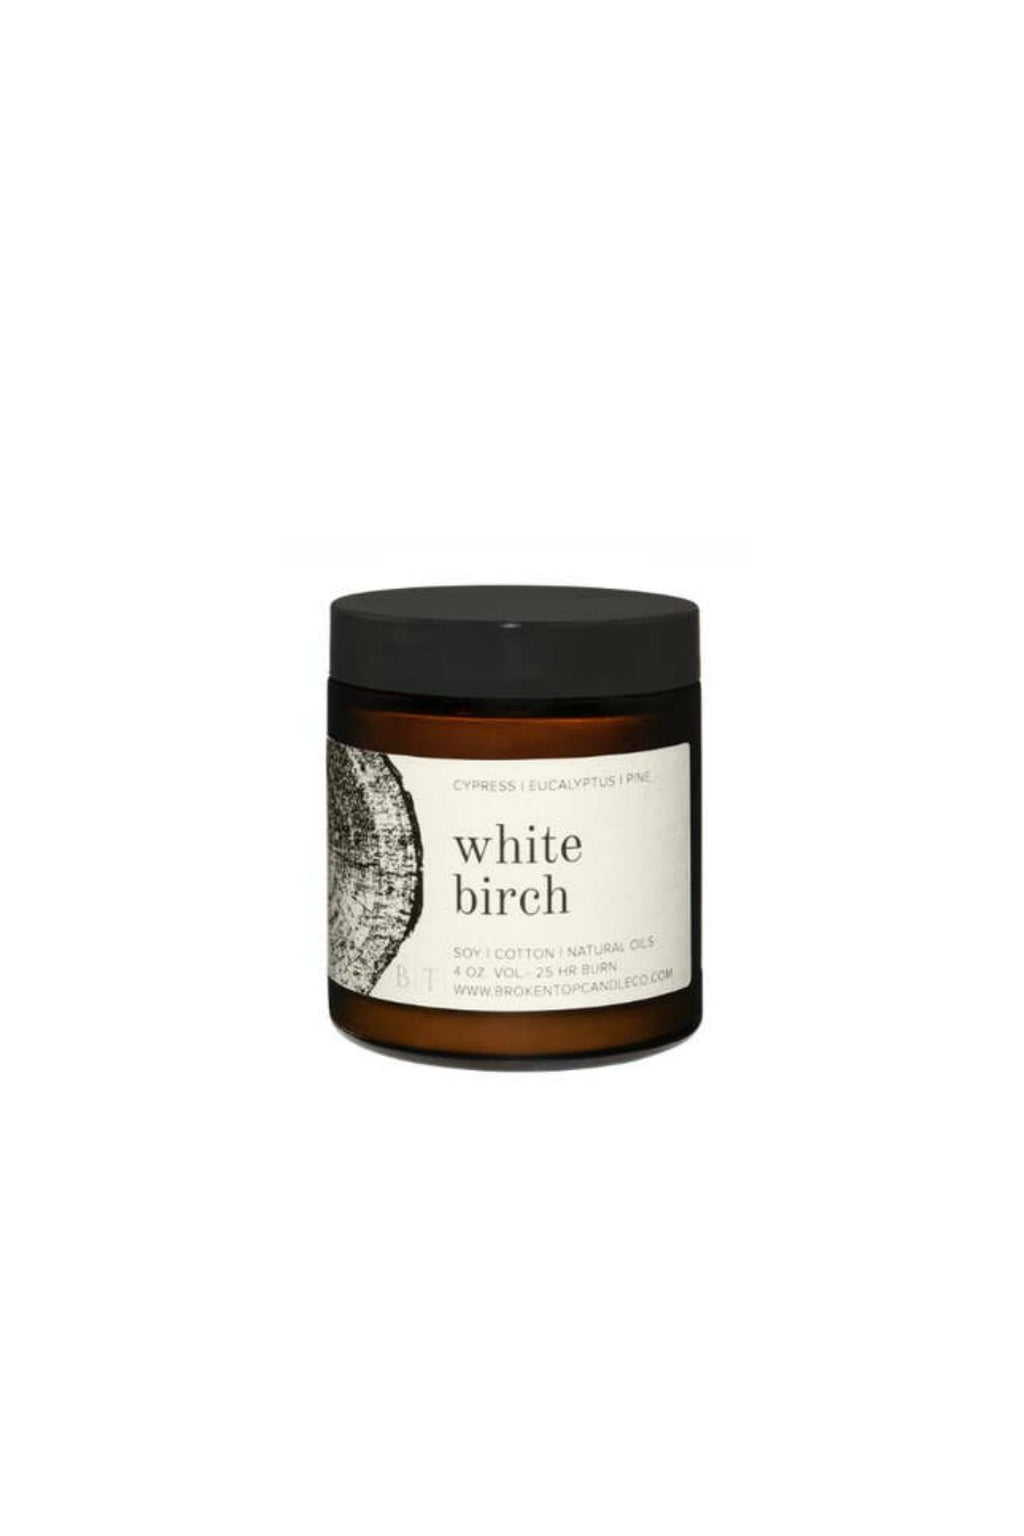 Broken Top Candle Co. 4 oz. Soy Candle - White Birch